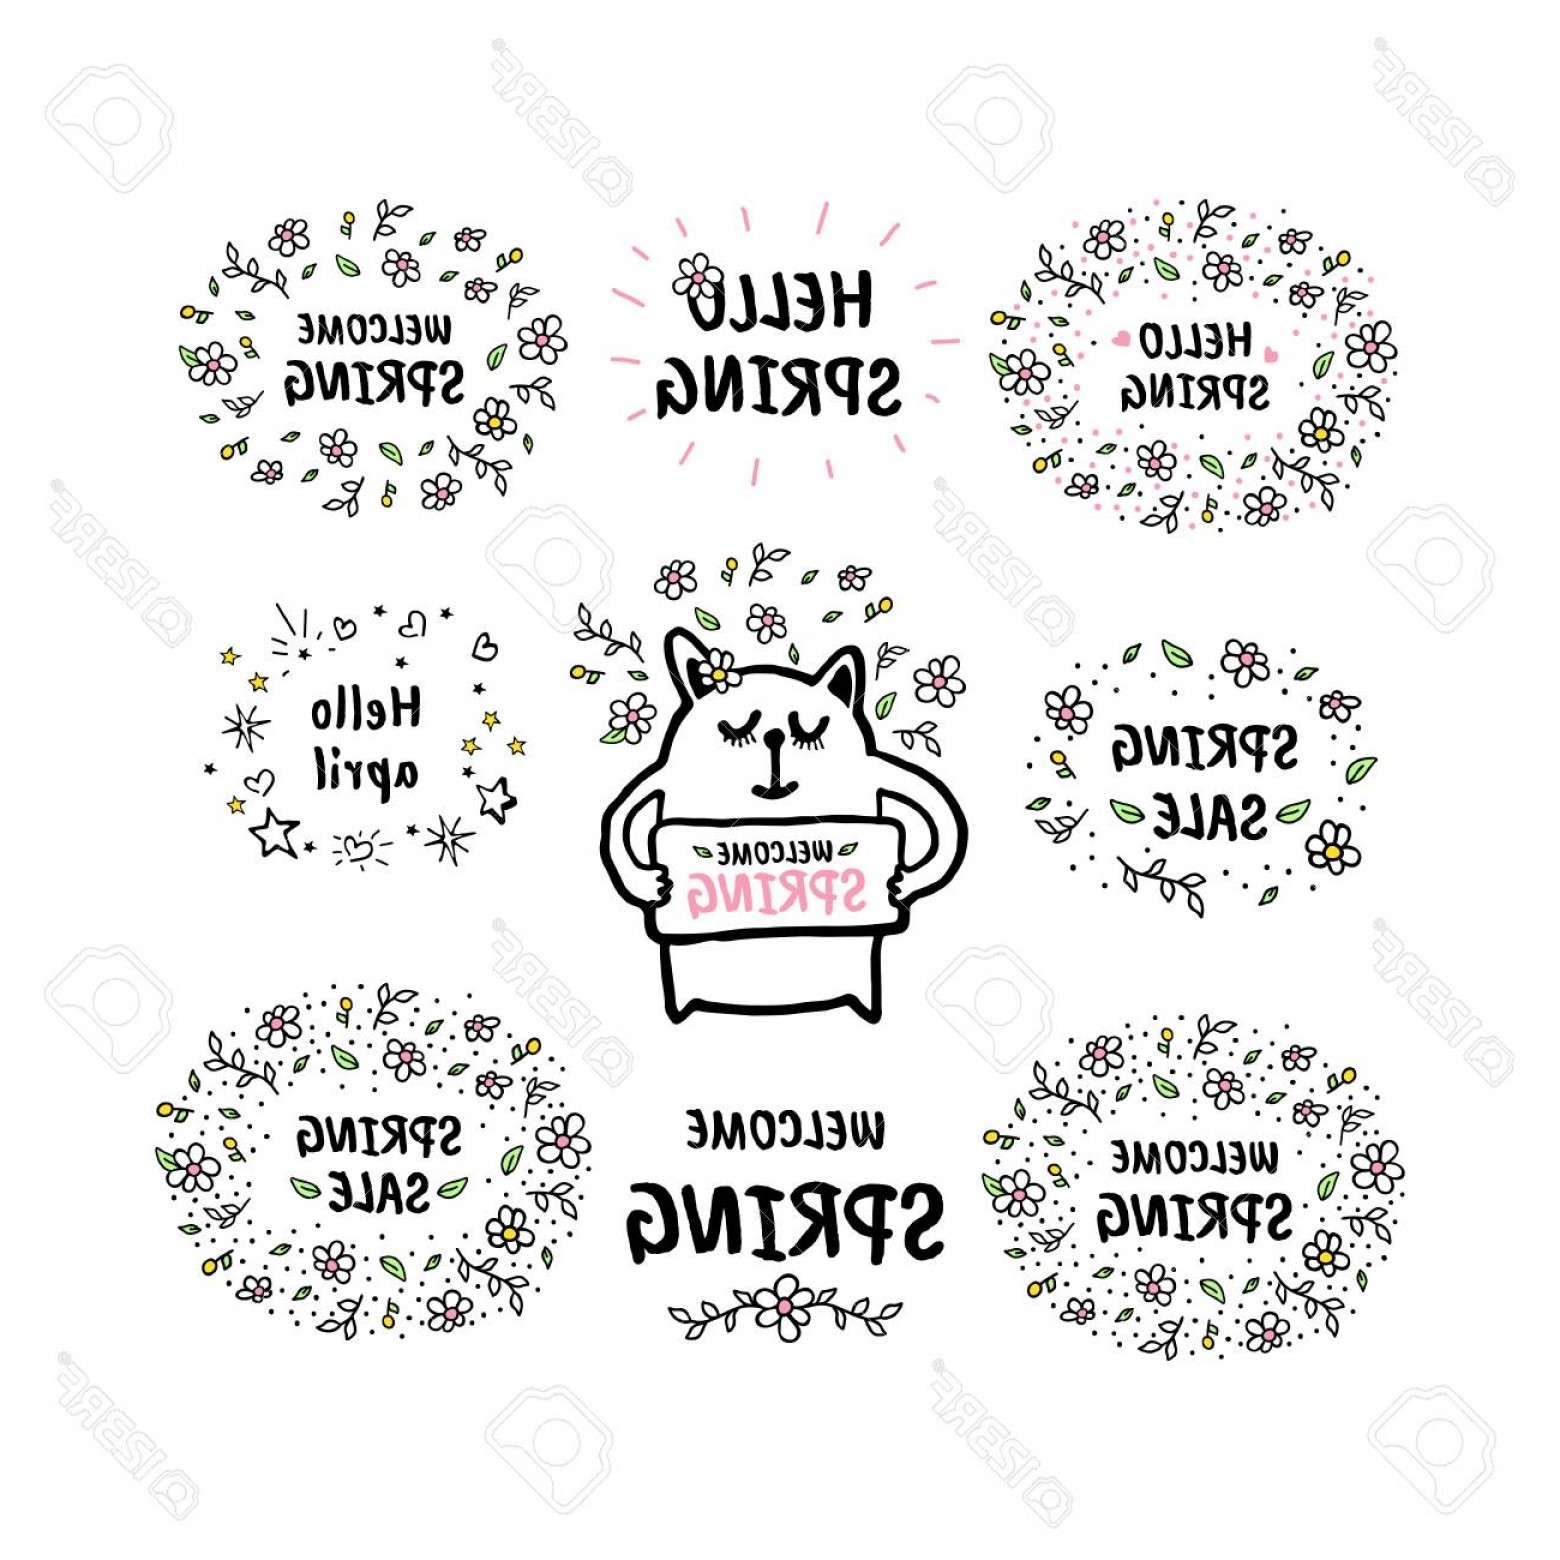 Cute Design Elements Vector Set: Photostock Vector Set Of Vector Cute Doodles Spring Illustrations With Text And Graphic Design Elements Fancy Trendy C